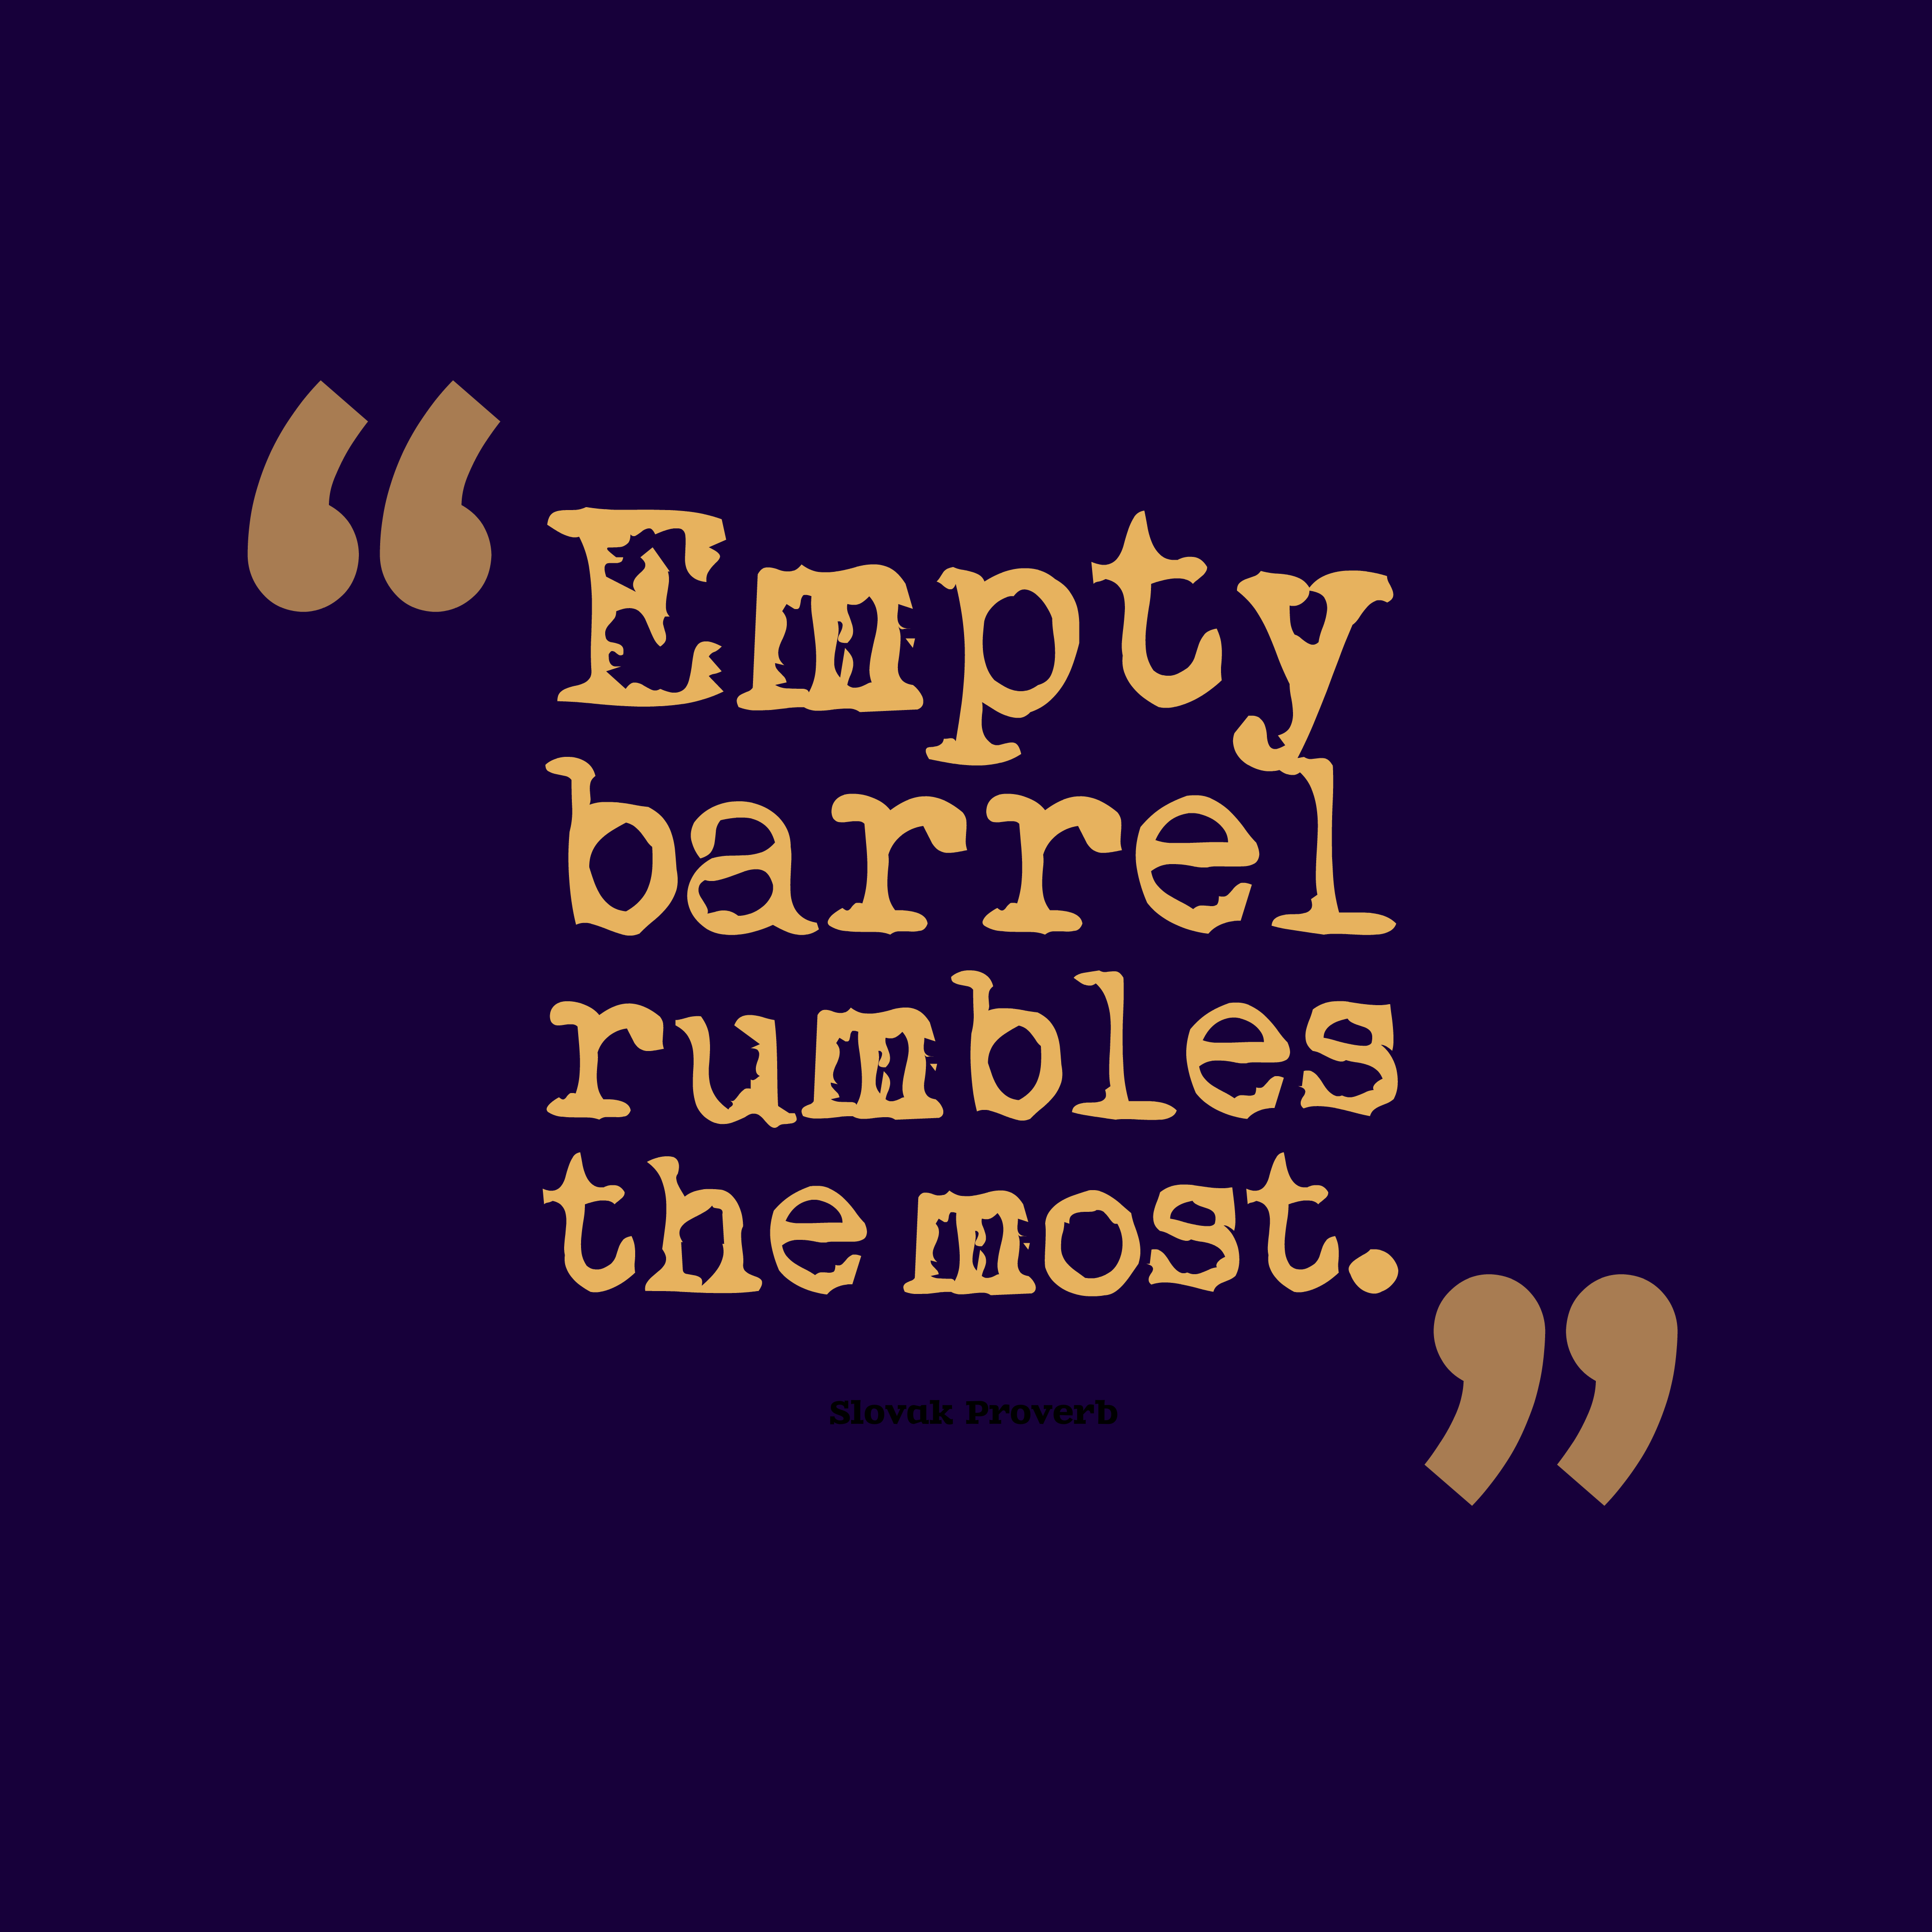 Quotes about emptiness i feel empty 50 quotes quotes about emptiness i feel empty altavistaventures Choice Image